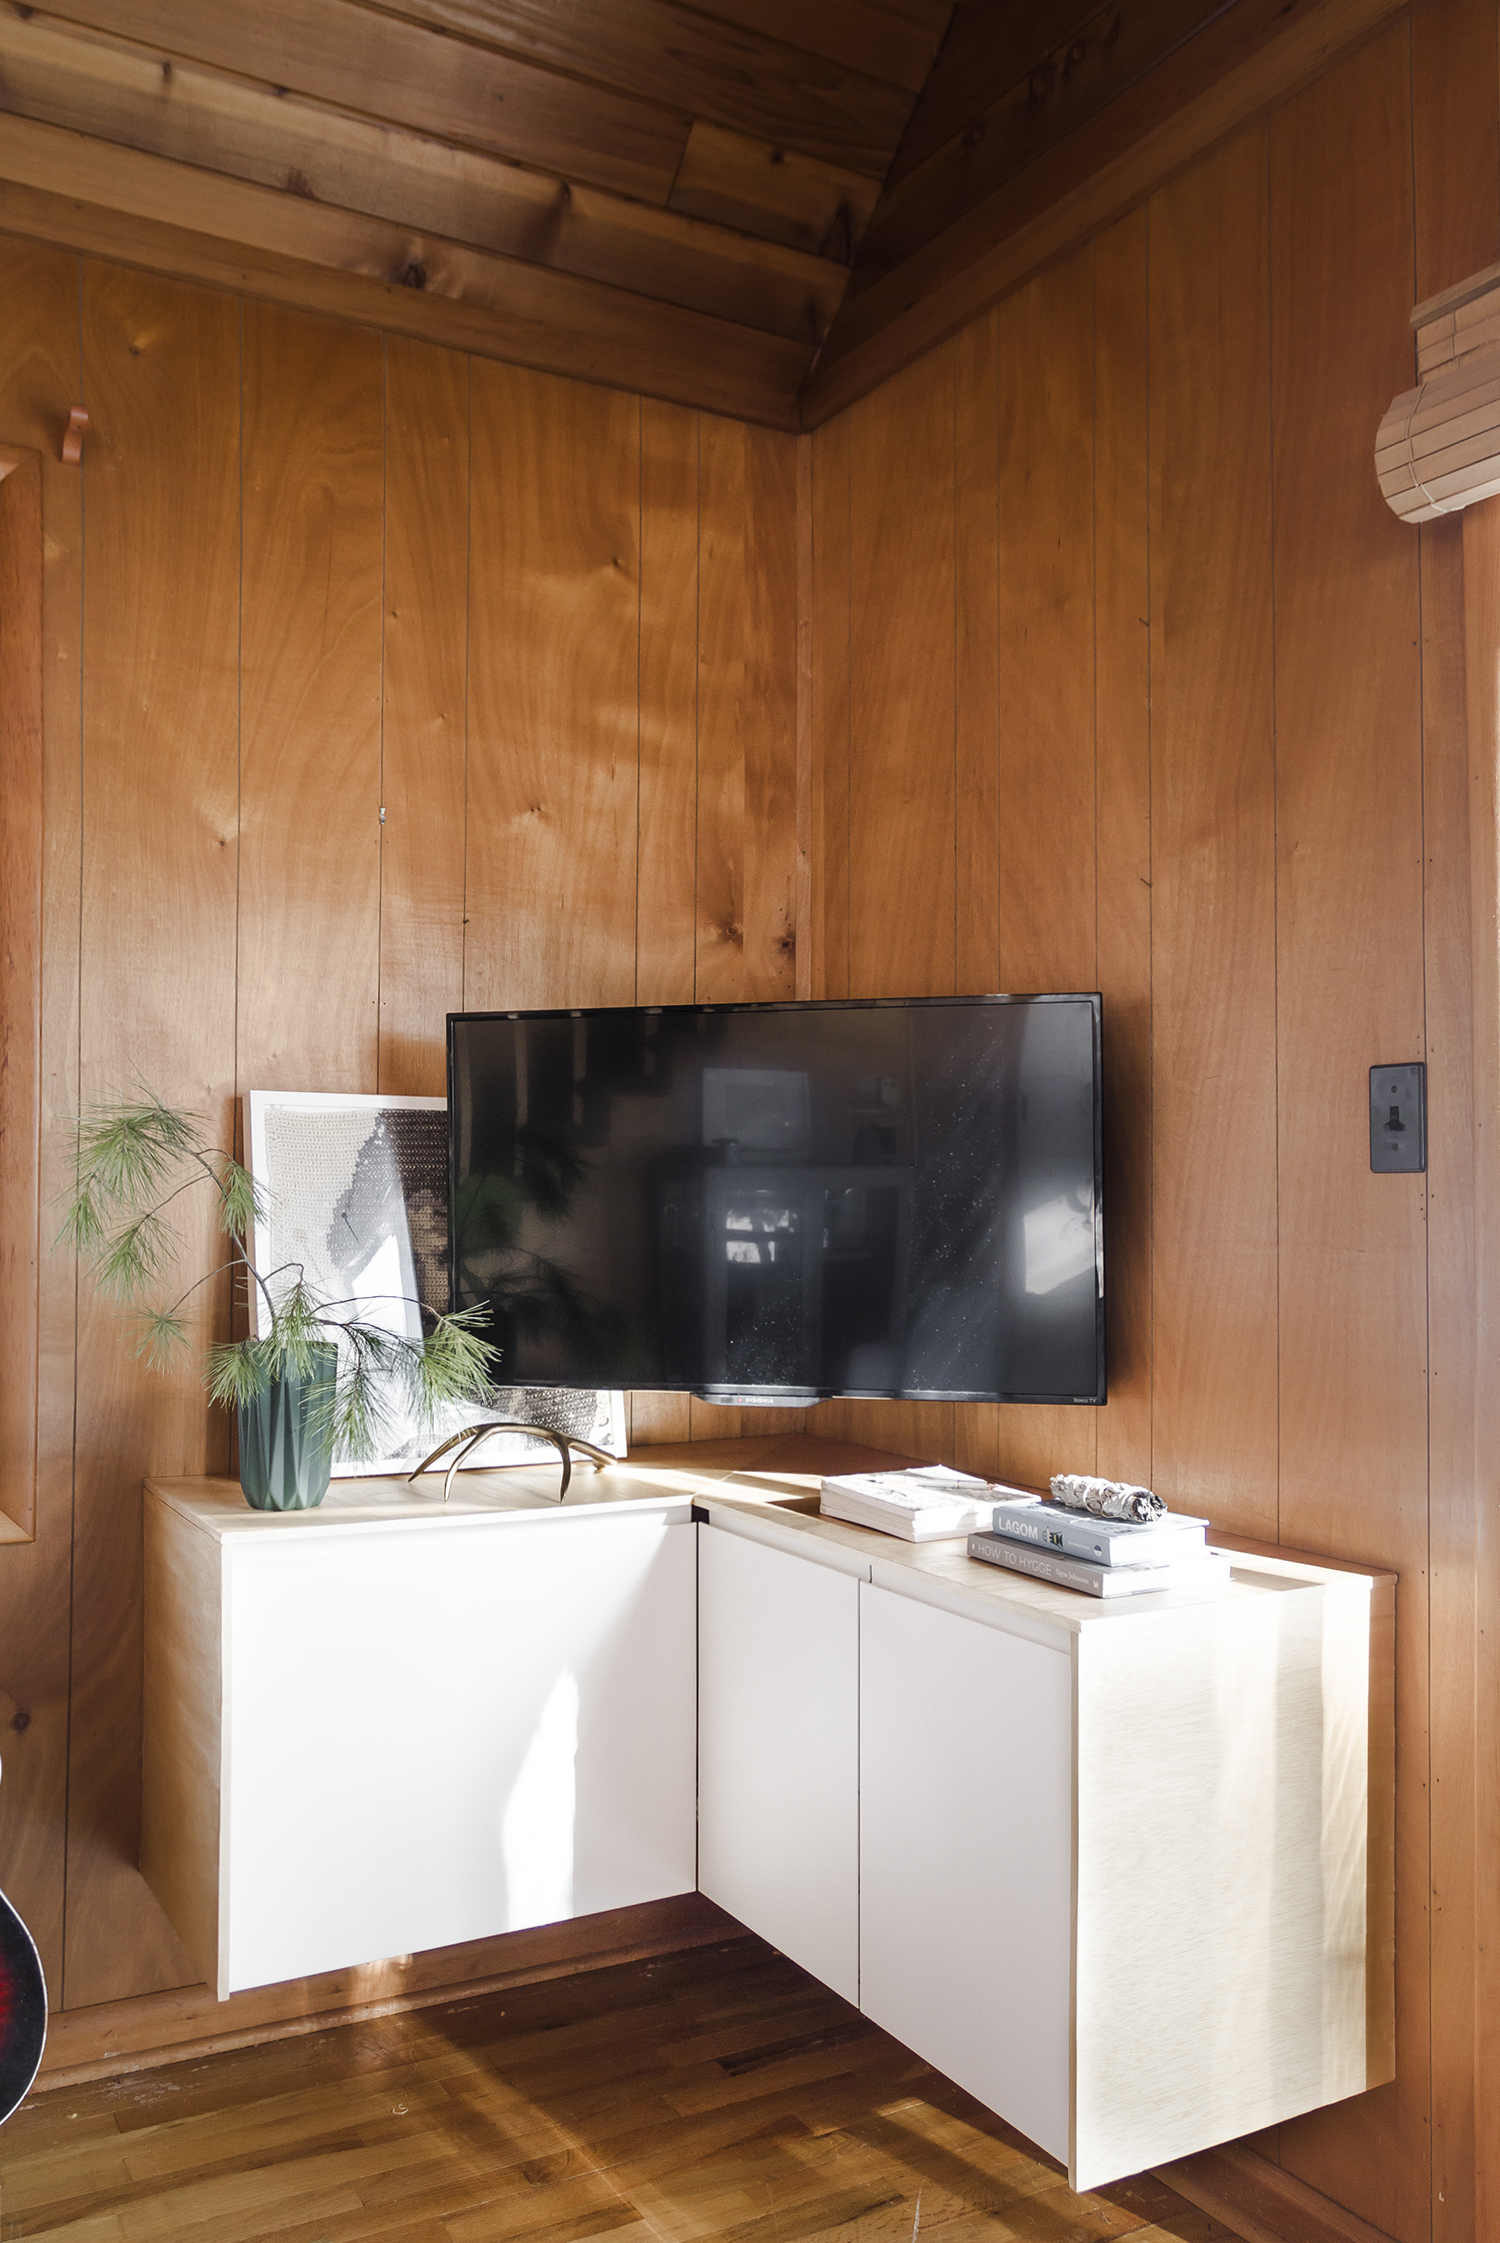 Deucecities Henhouse | Custom Corner TV Credenza using Ikea Kitchen Cabinets